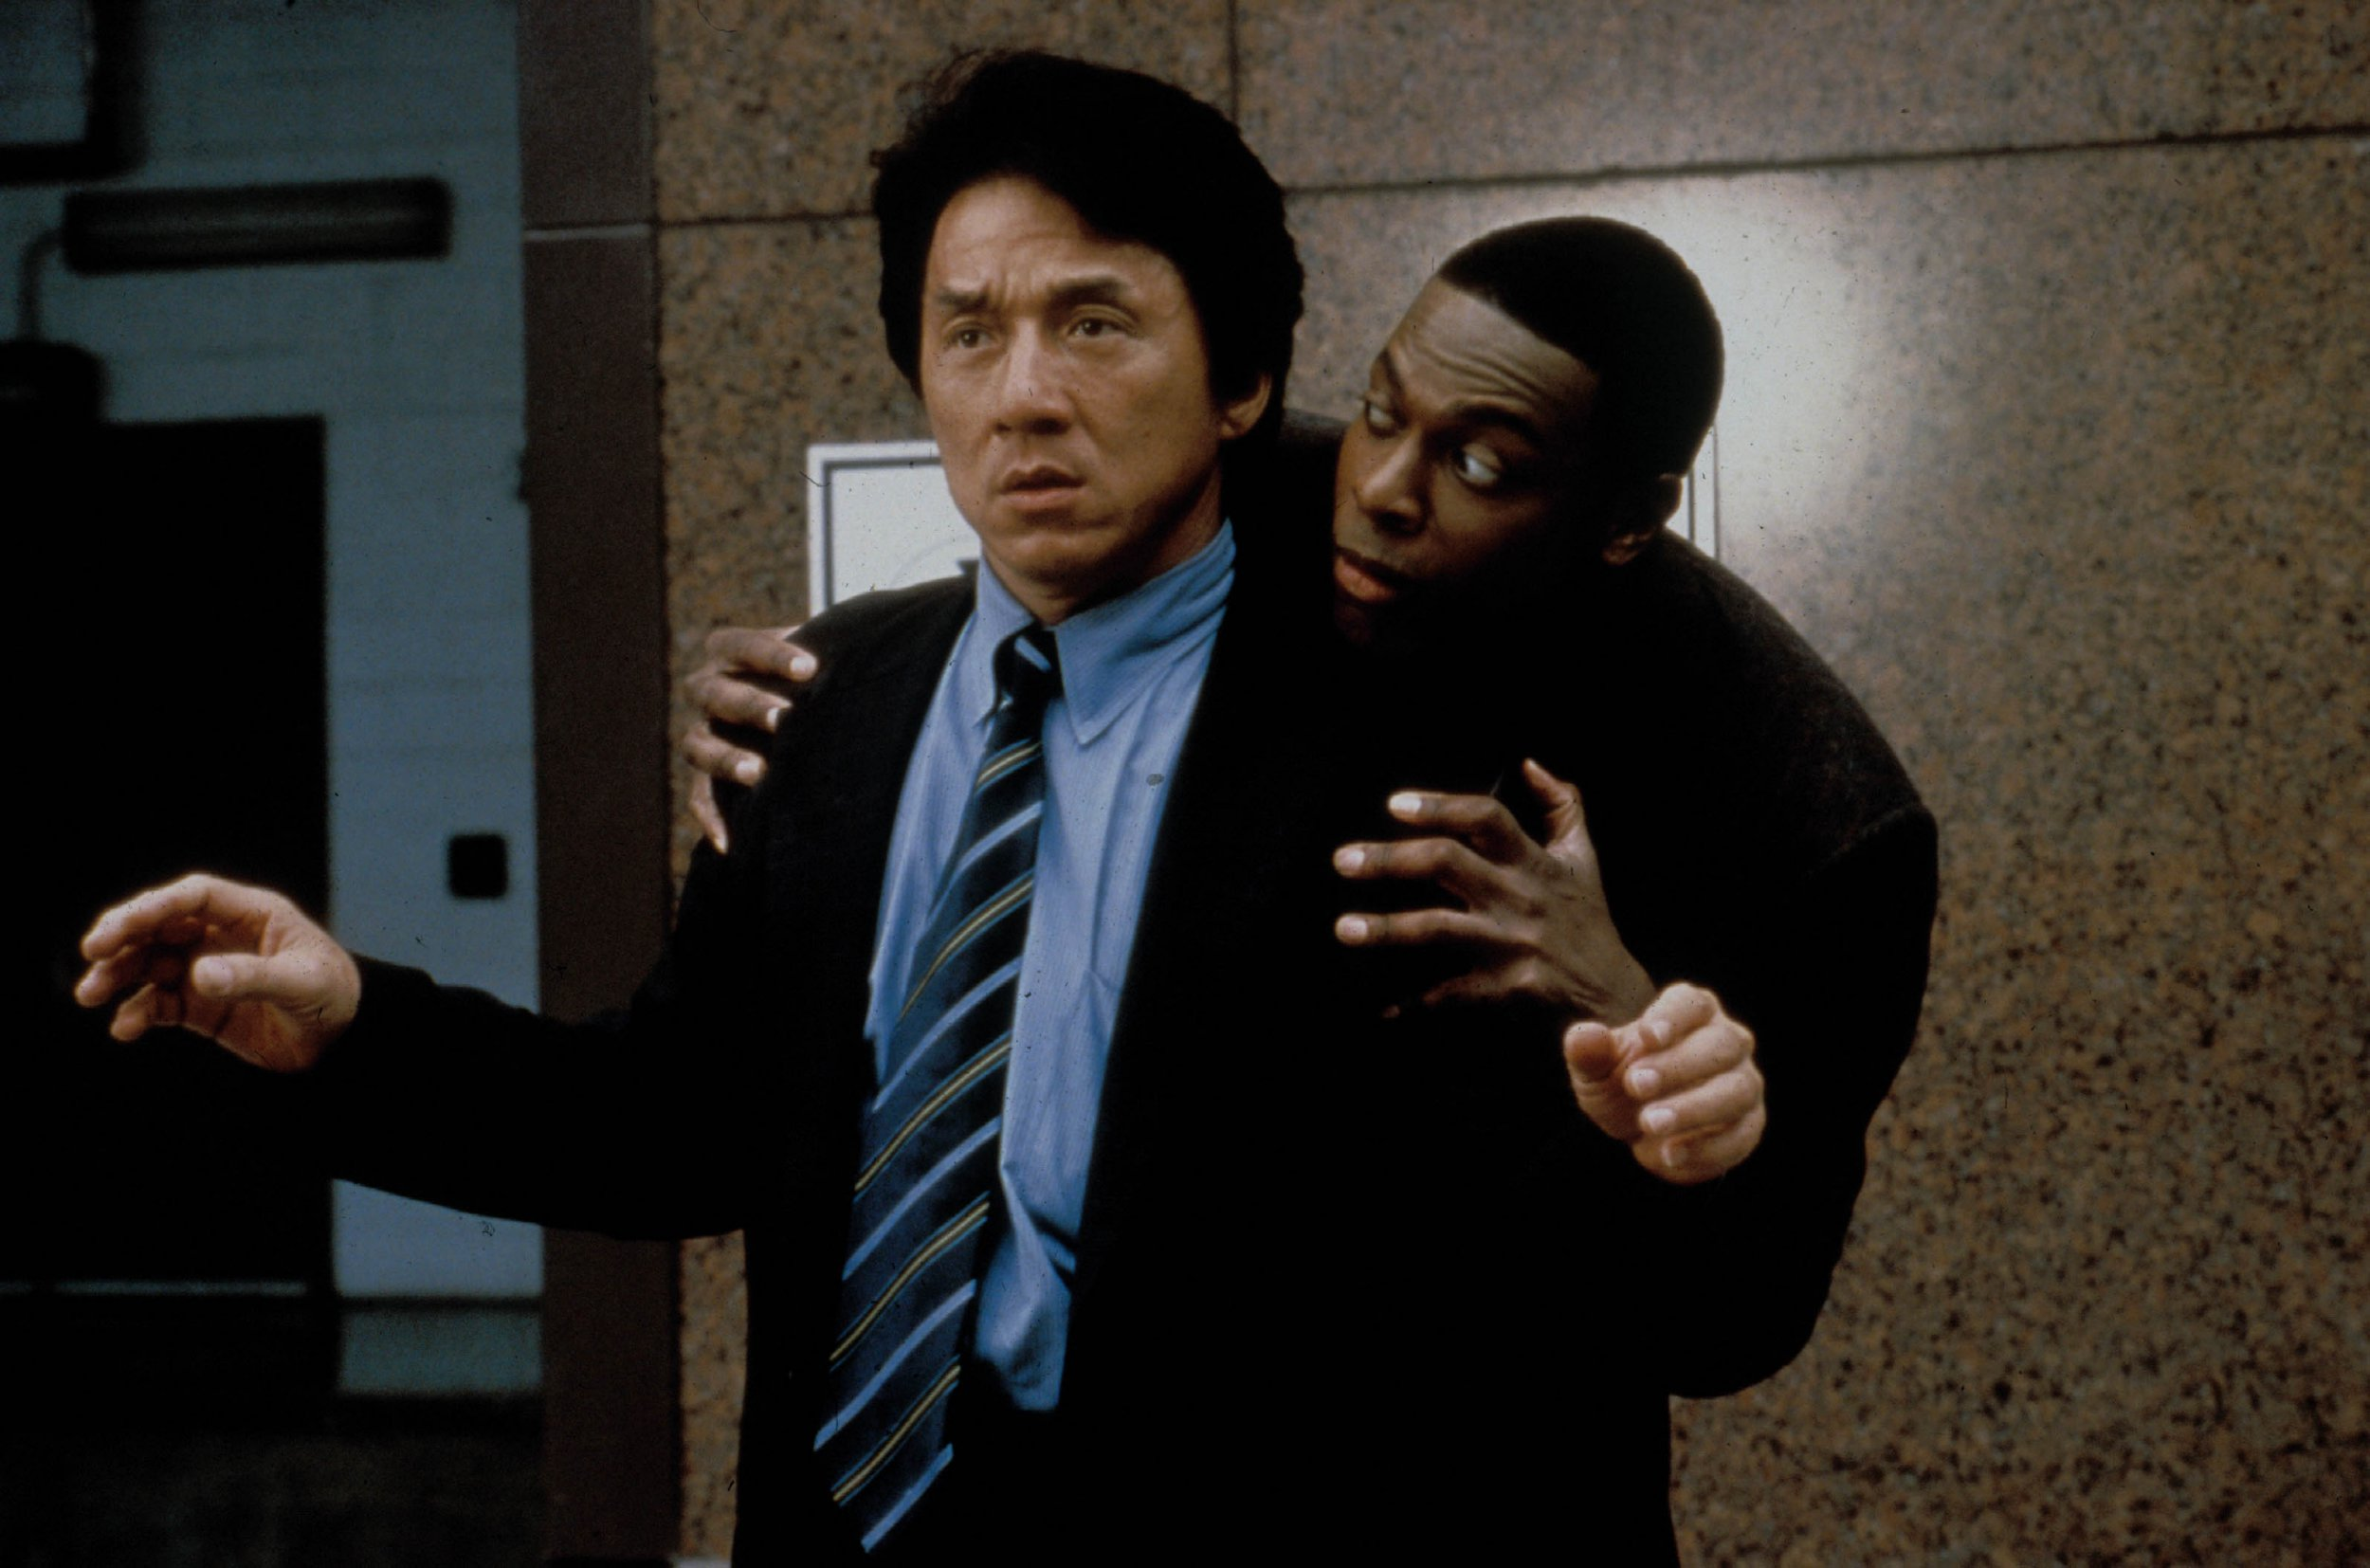 Rush Hour 4 is happening as Chris Tucker and Jackie Chan reunite